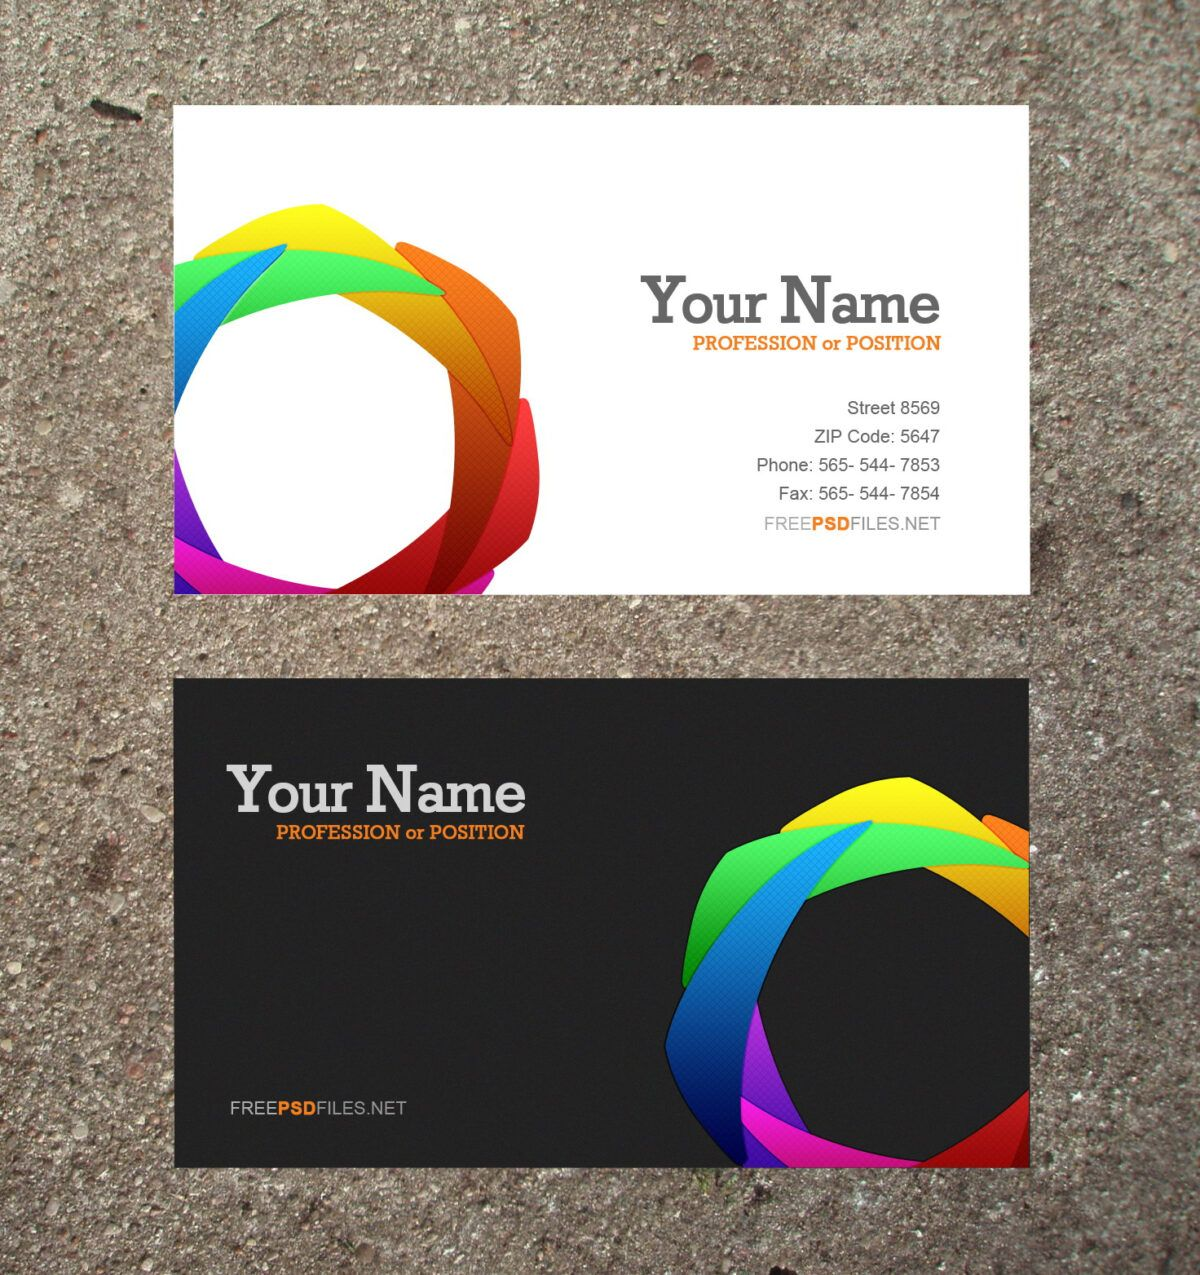 Stunning Cliparts Clipart Business Card Software Templates With Blank Business Business Card Template Word Business Card Software Business Card Template Psd